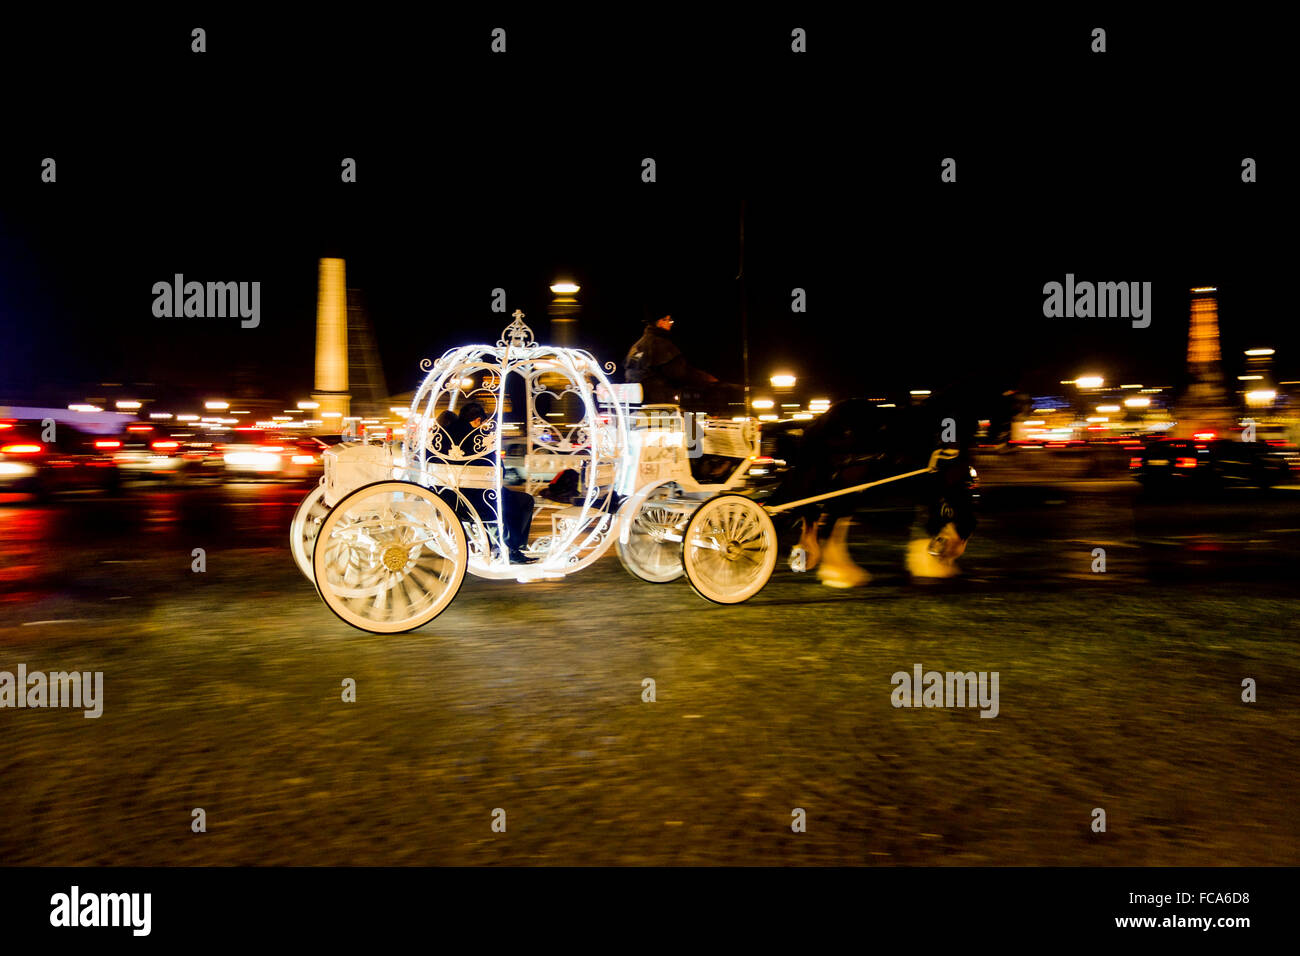 horse-carriage-cinderella-style-moving-a